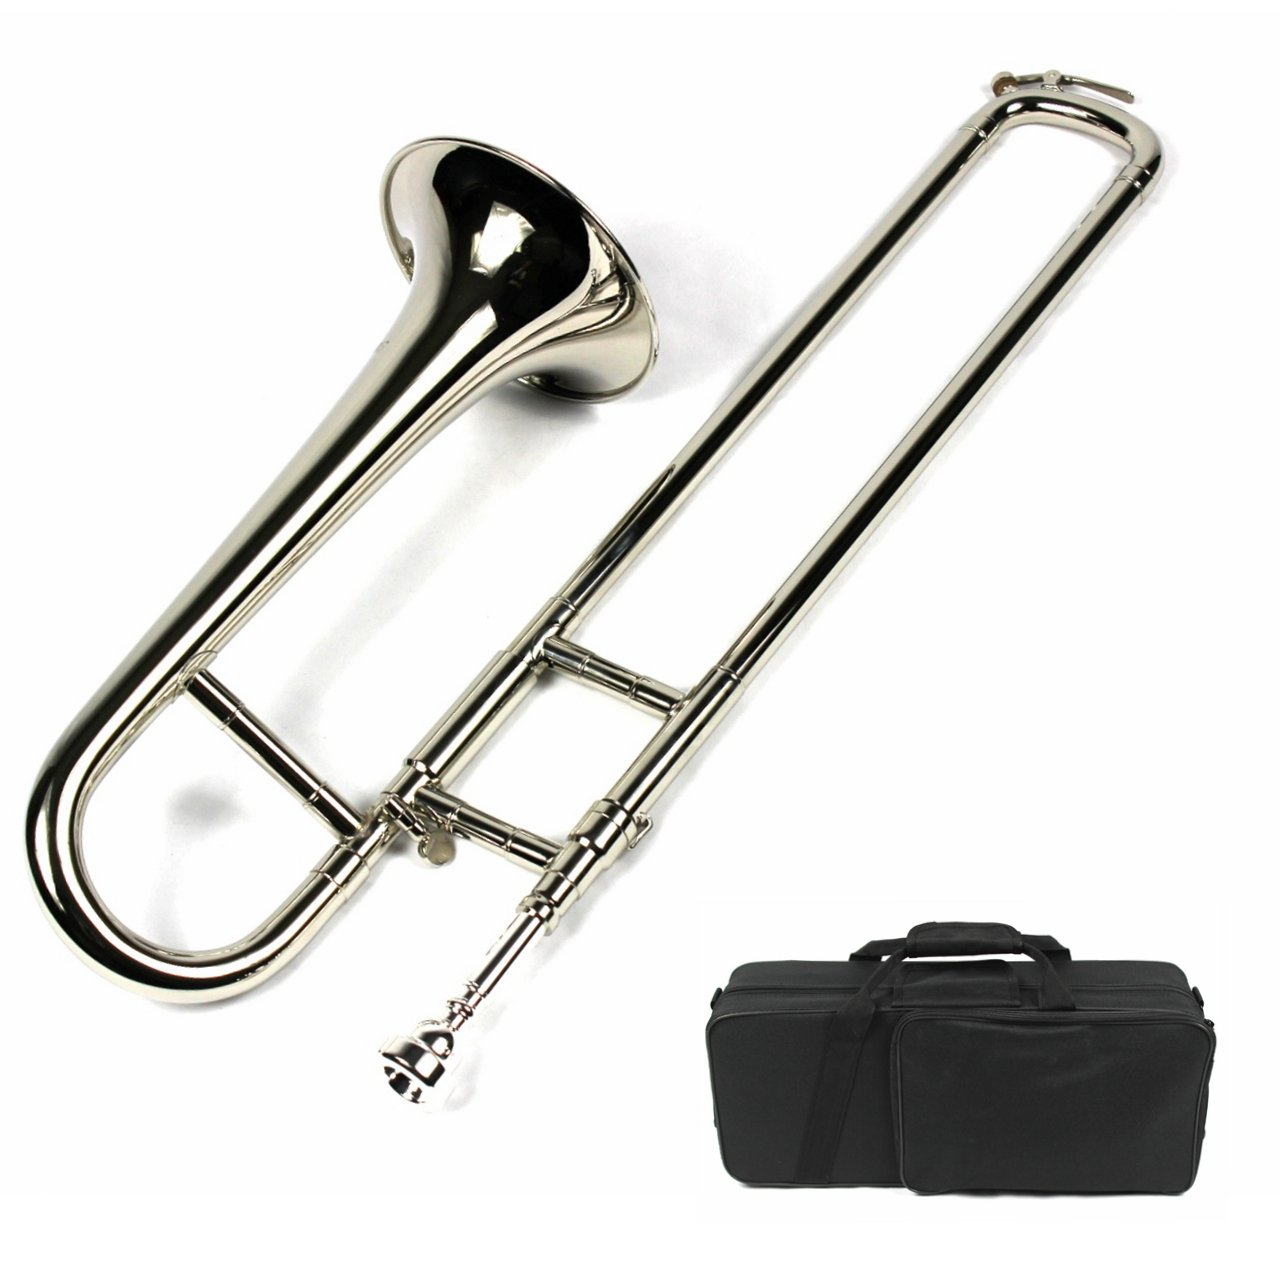 Brand New Bb Mini Trombone w/ Case and Mouthpiece- Nickel Plated Finish by Moz